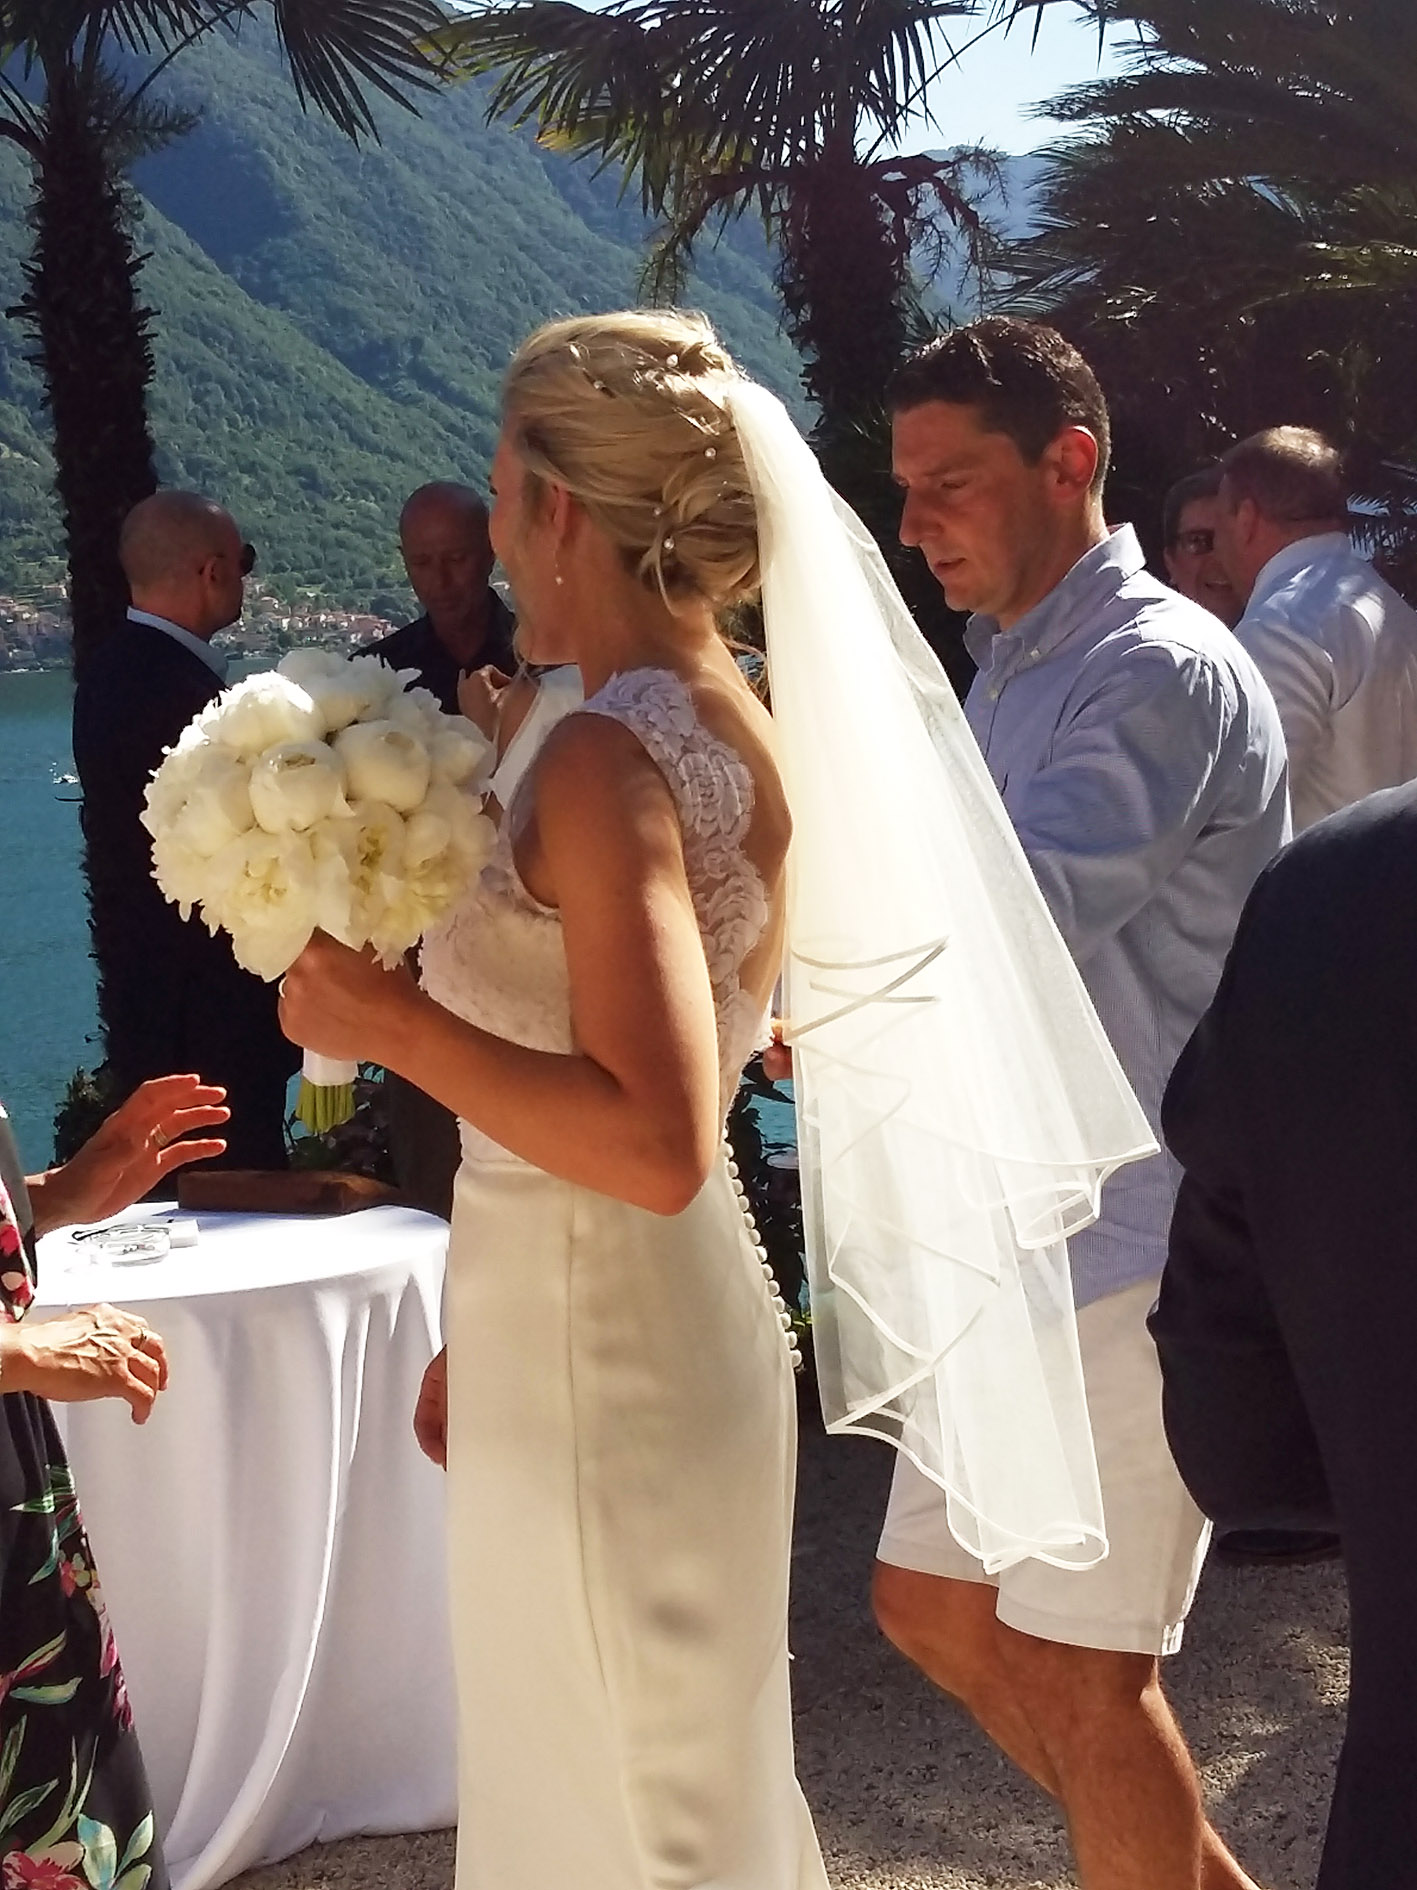 wedding lake bride   Events Lake Como